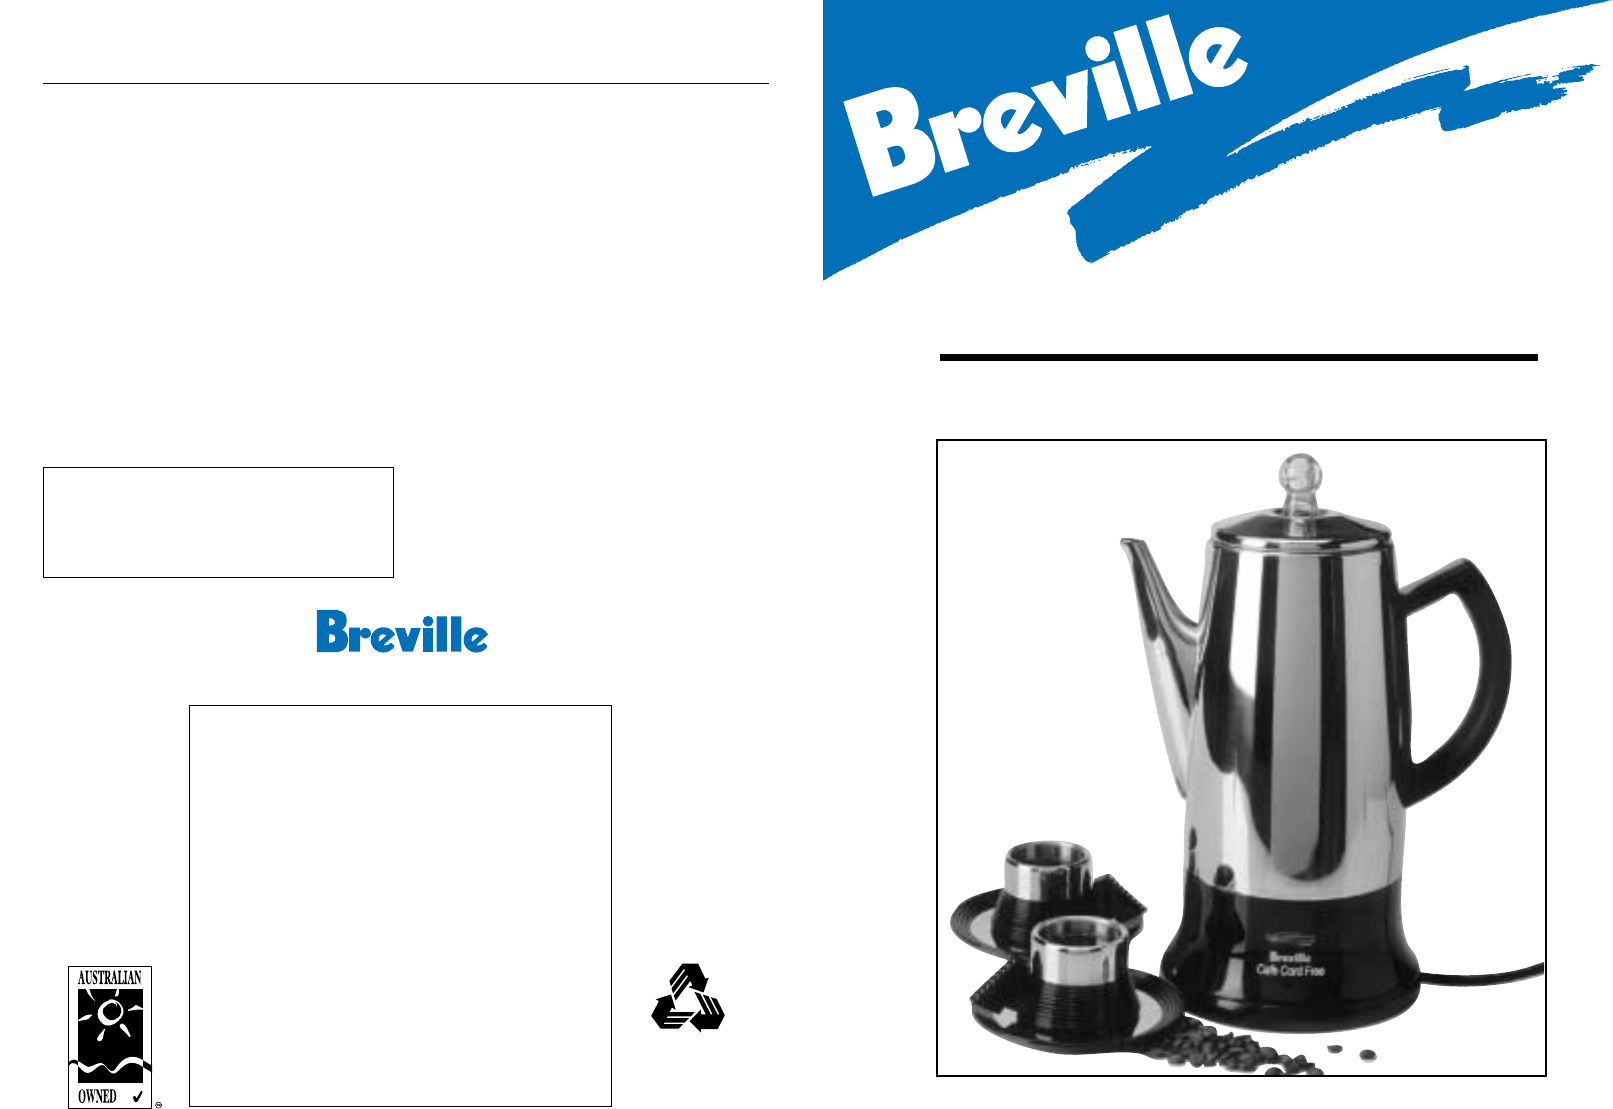 breville coffee maker cleaning instructions